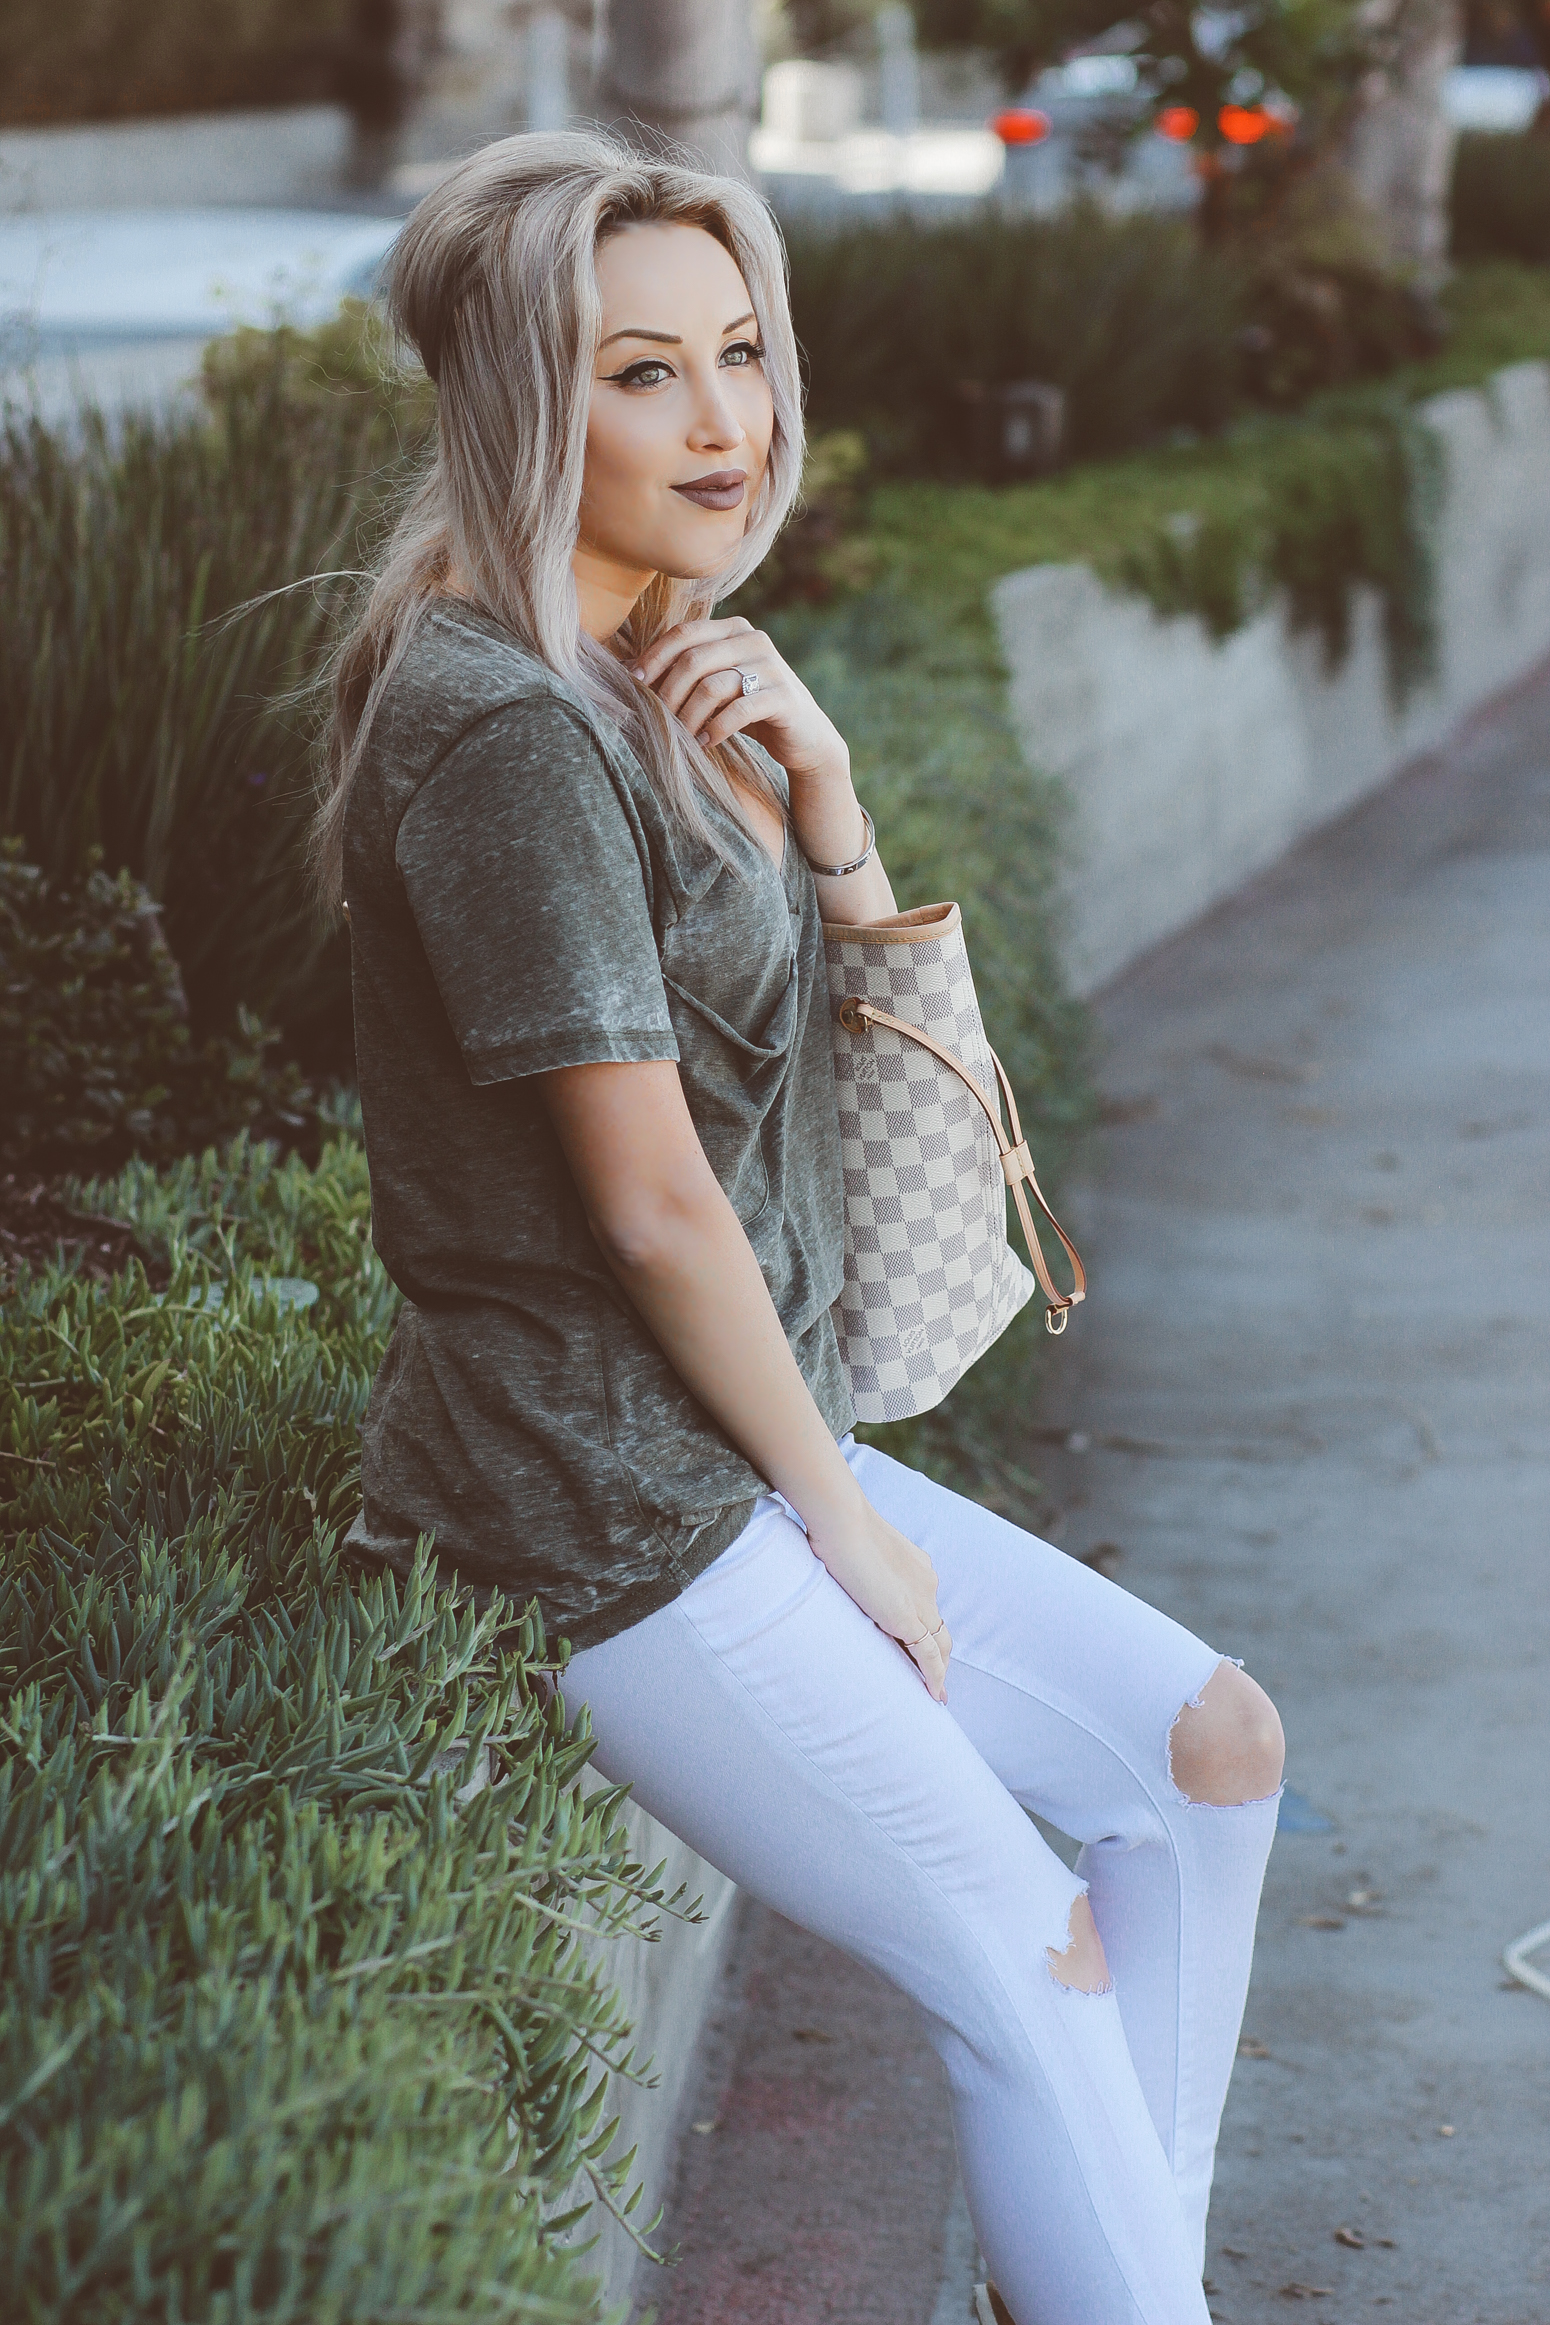 Blondie in the City | Ripped White Jeans & an Olive Green Tee @shopather | White Birkenstocks | Louis Vuitton Bag